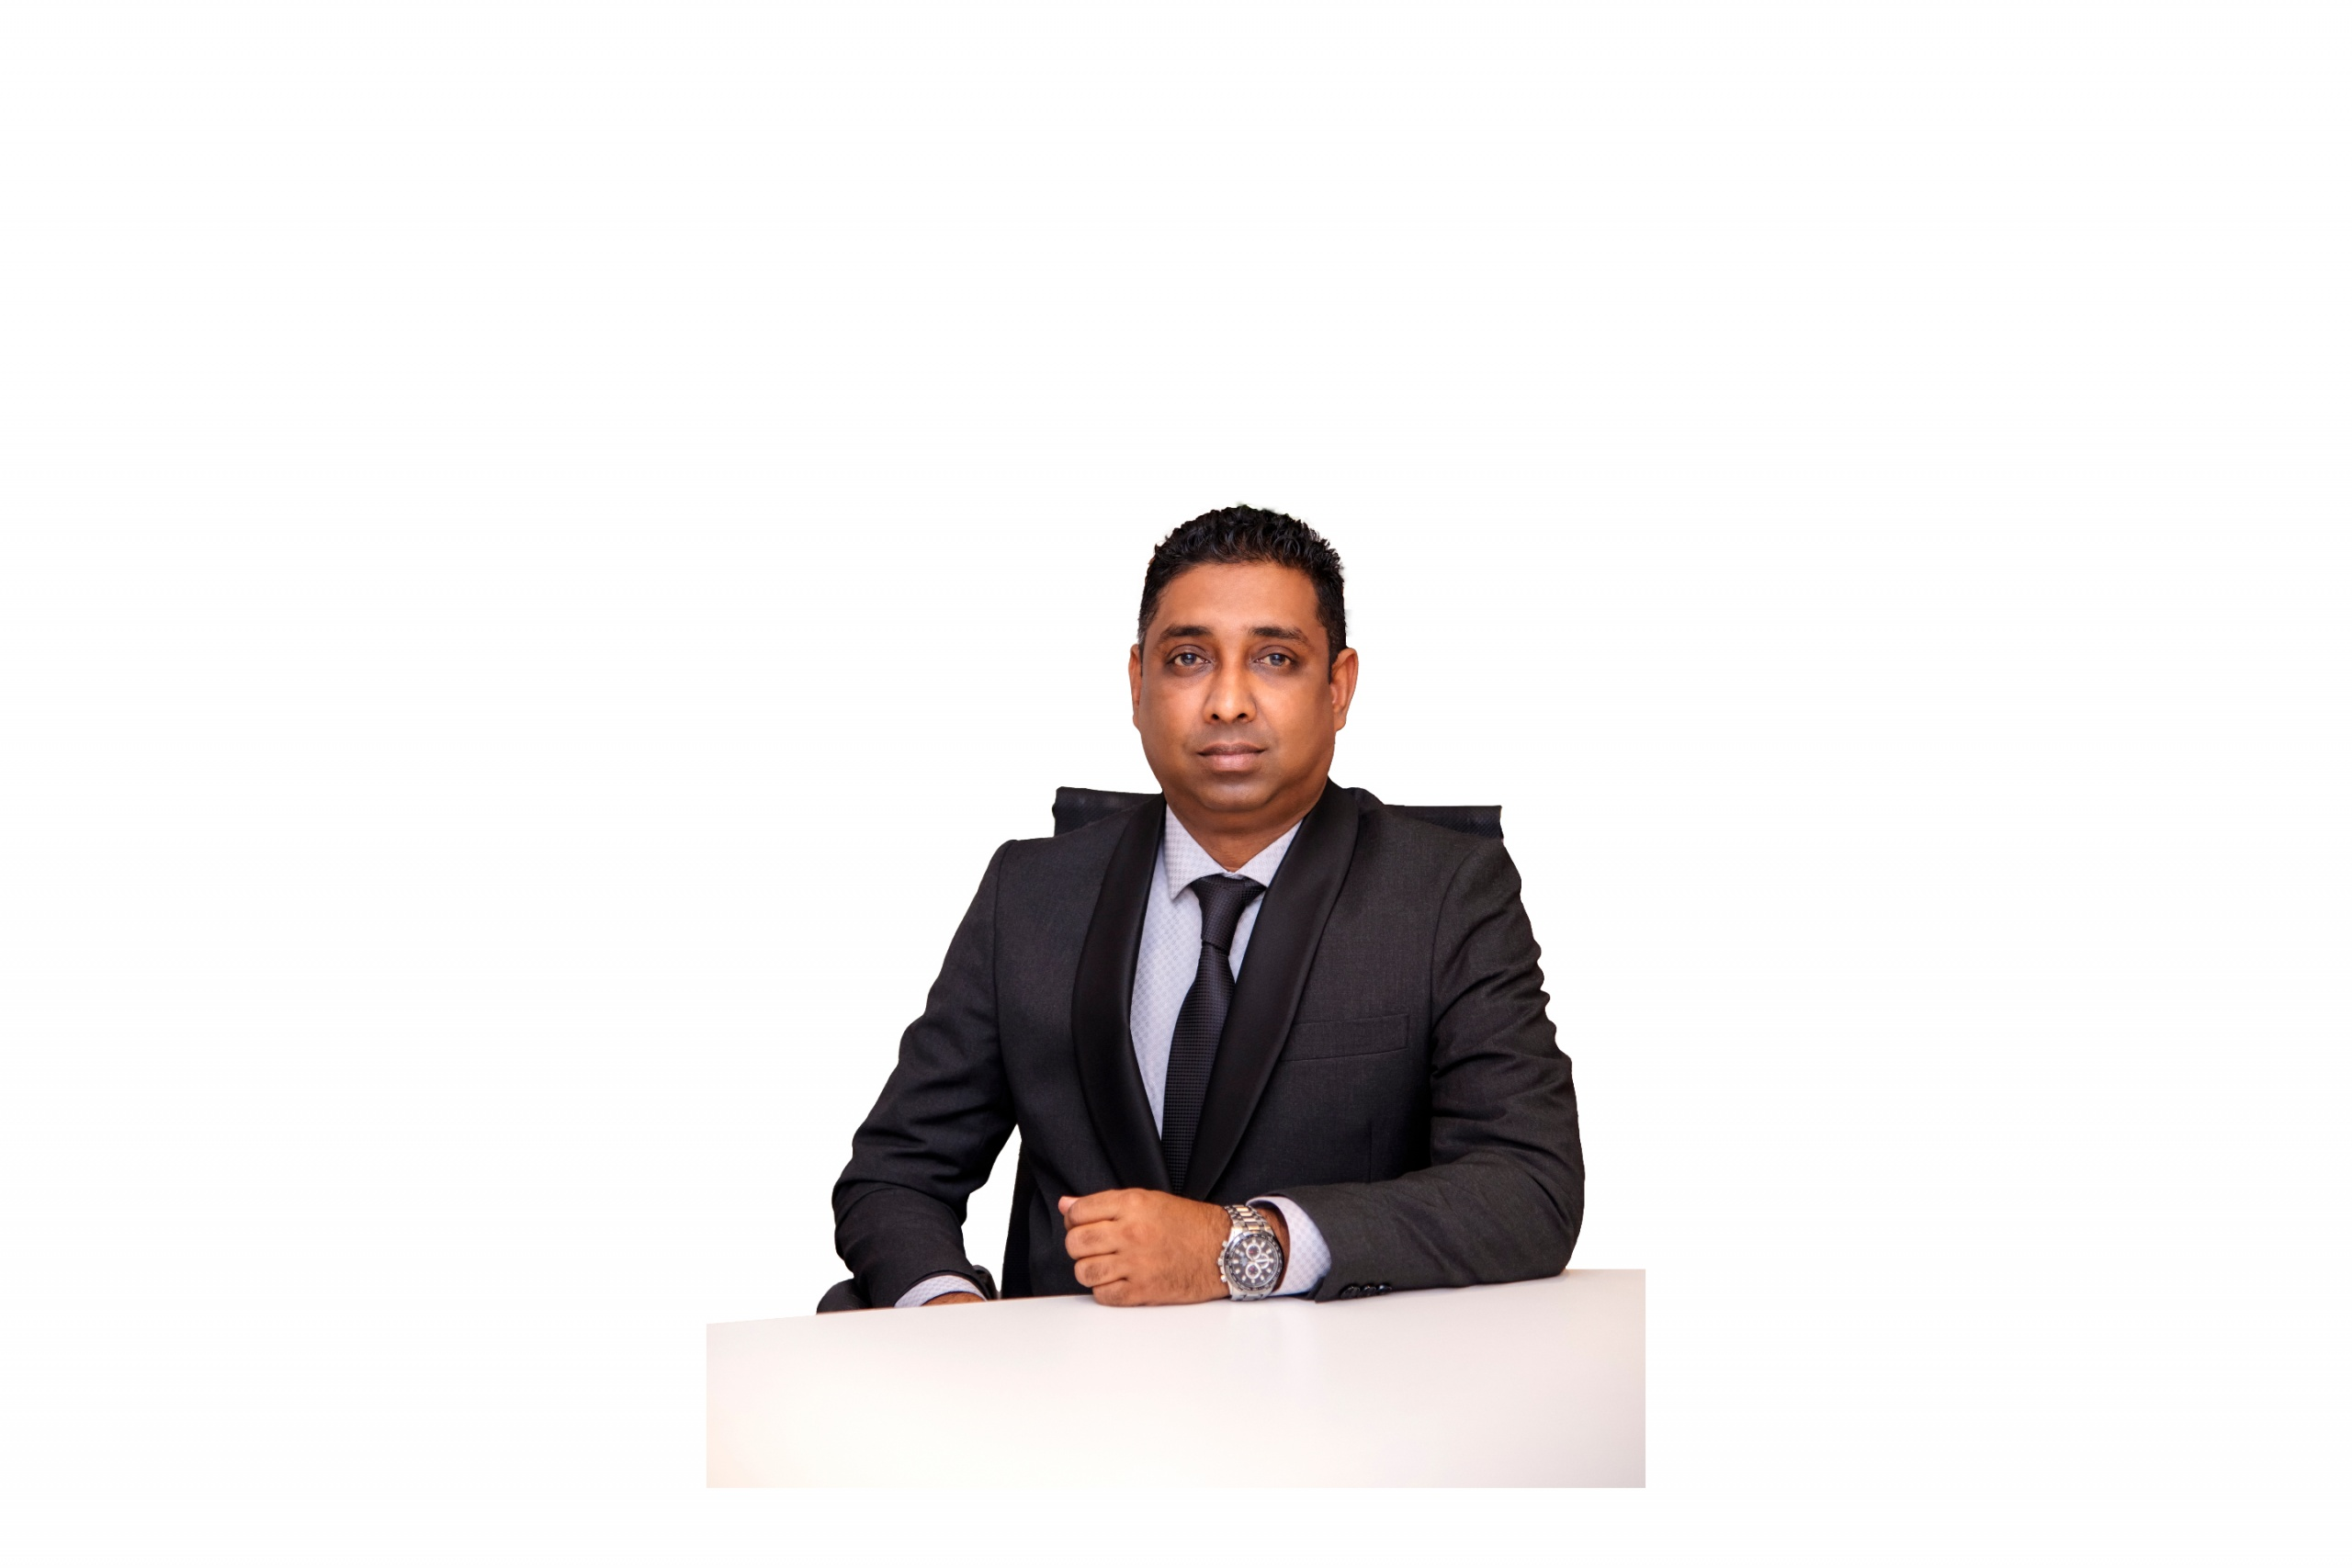 A Passionate Marketer Maintaining Notable Standards – Dr.Lalindra Munasinghe, Chief Executive Officer of Brandmunas and Munaspparel